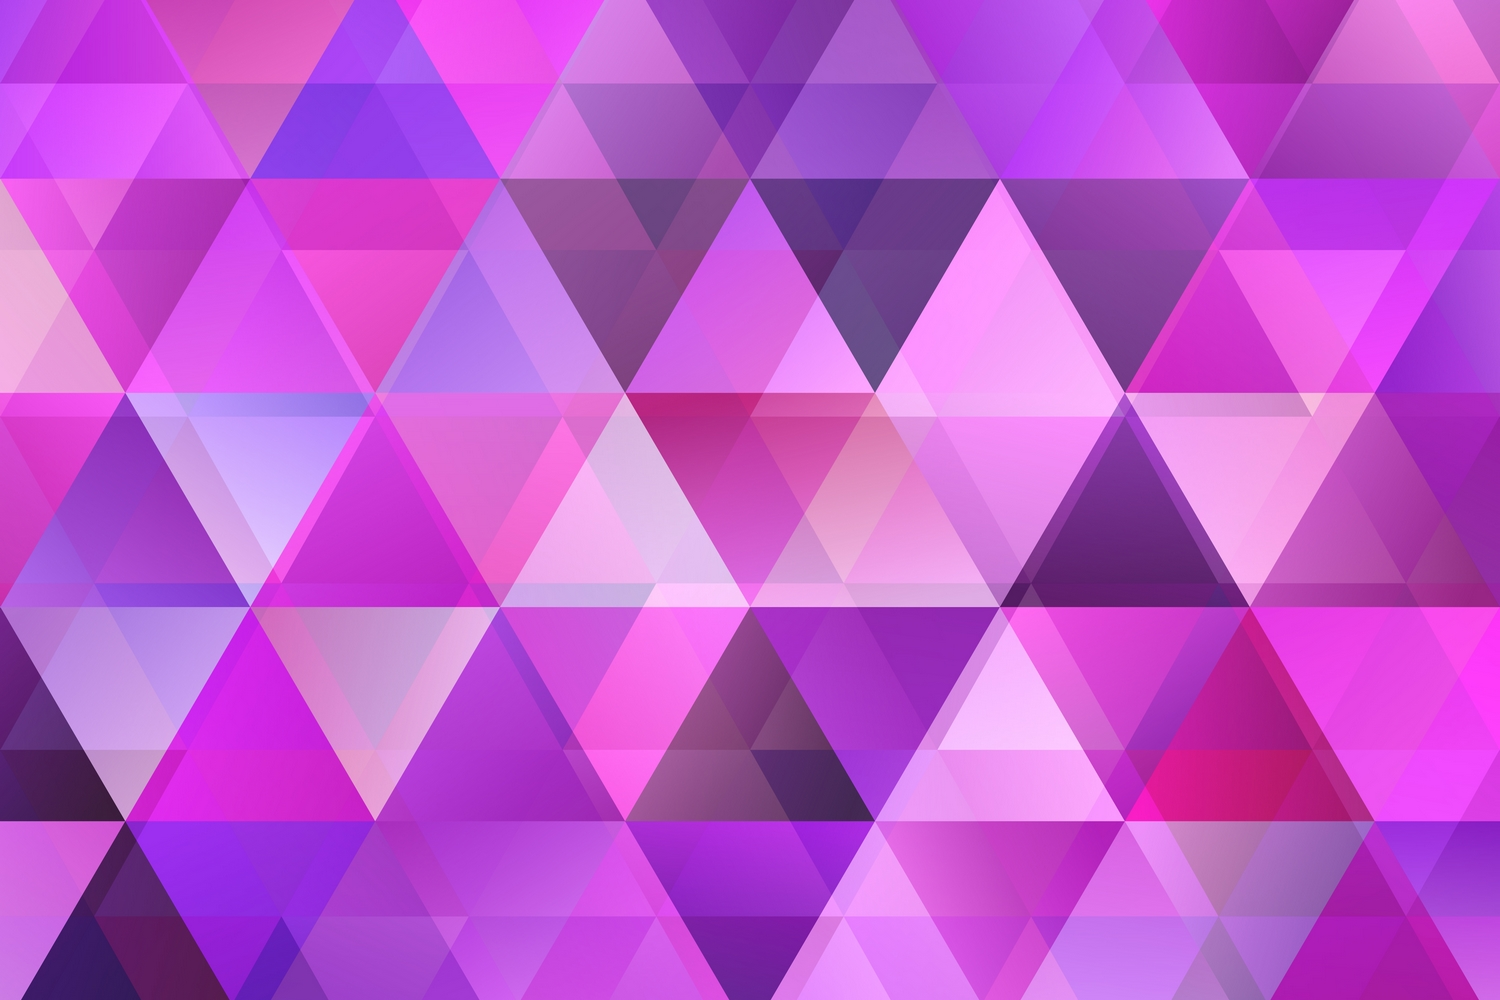 24 Gradient Polygon Backgrounds AI, EPS, JPG 5000x5000 example image 12